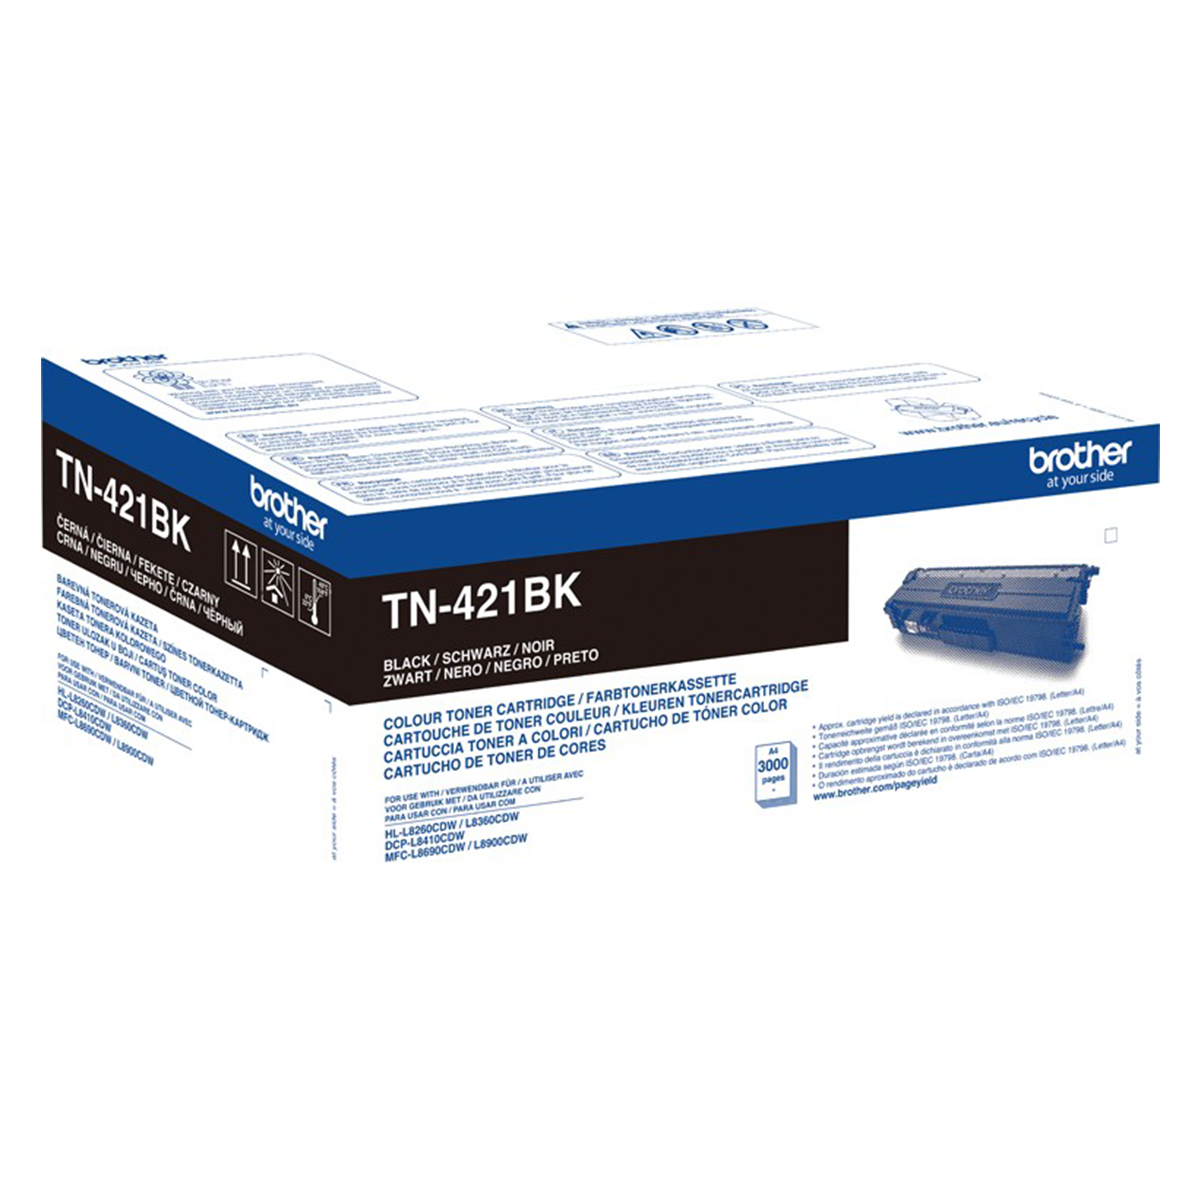 Brother TN-421BK Black Toner